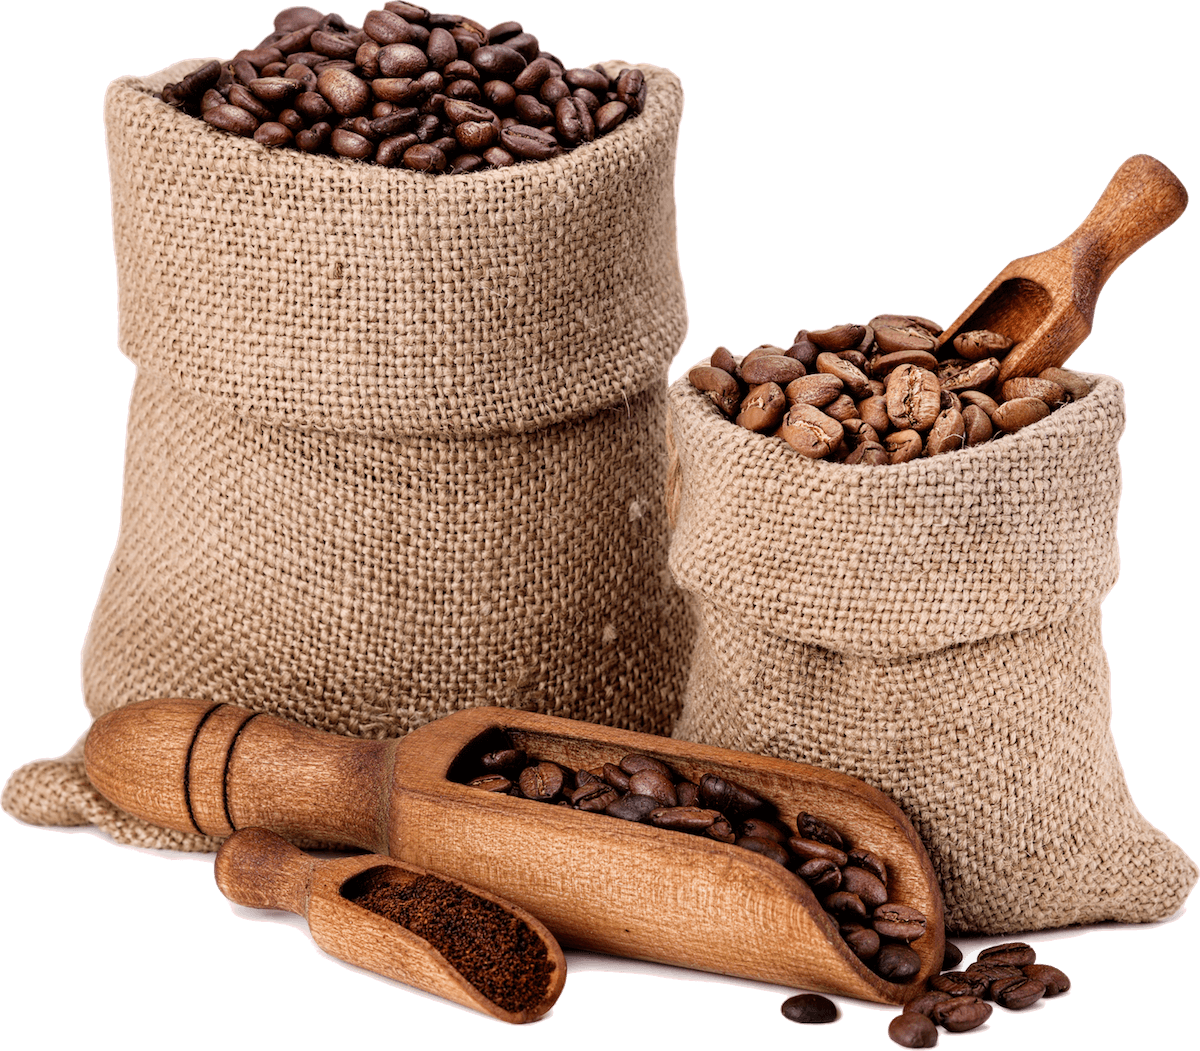 varieties-of-coffee-beans-P8XB6TB.png